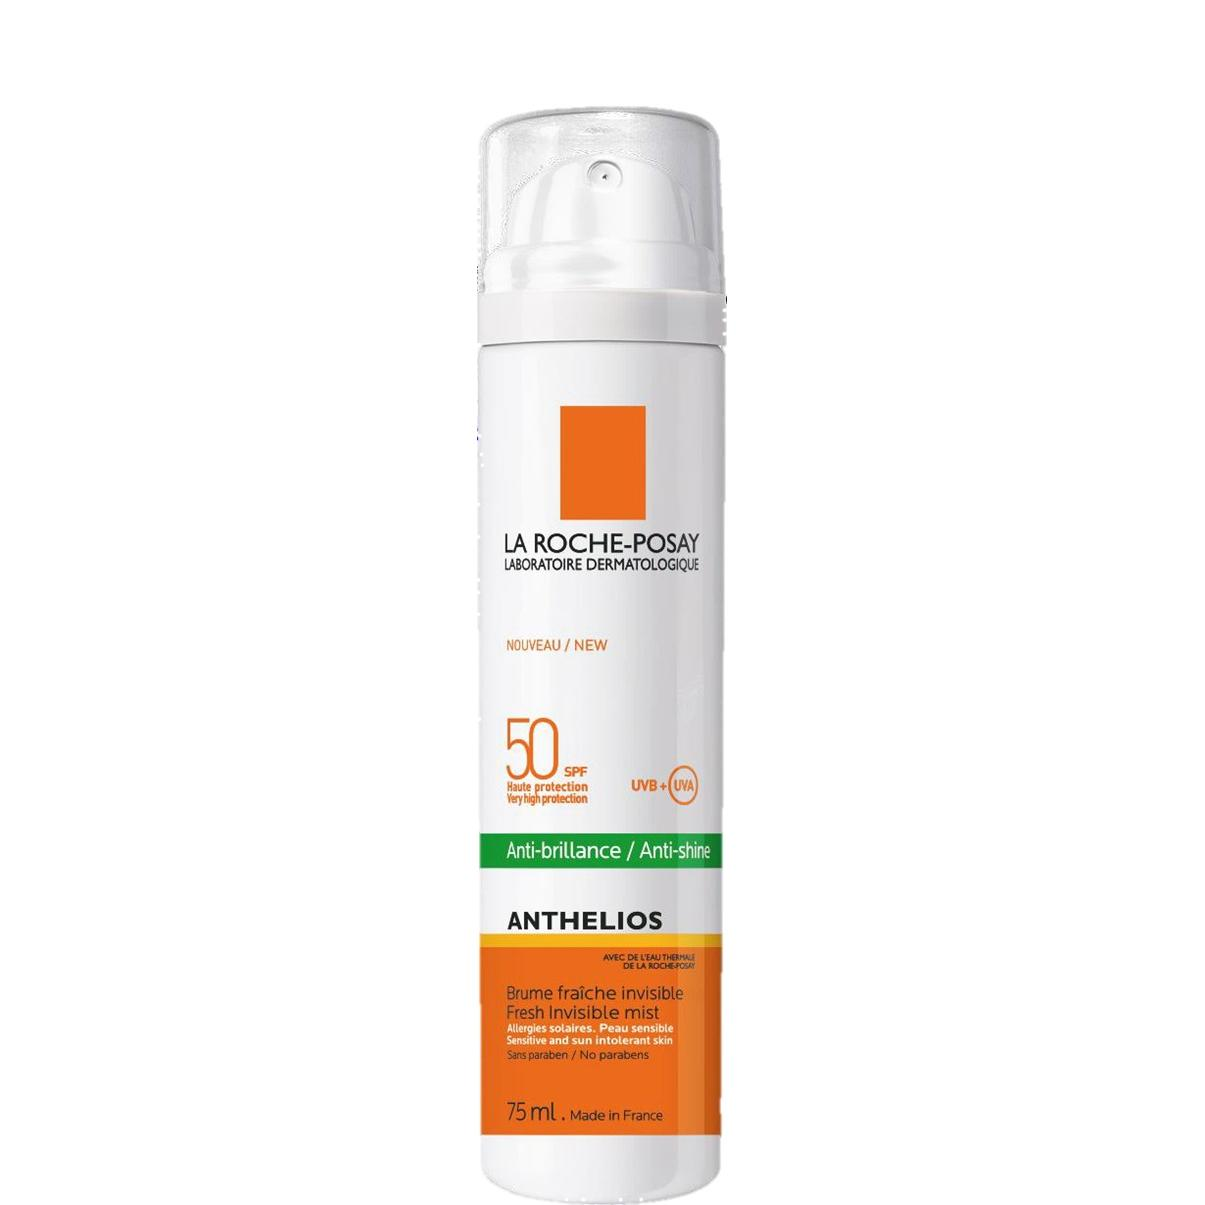 Image of La Roche-Posay Anthelios 50+ Zonnespray gelaatsnevel dry touch